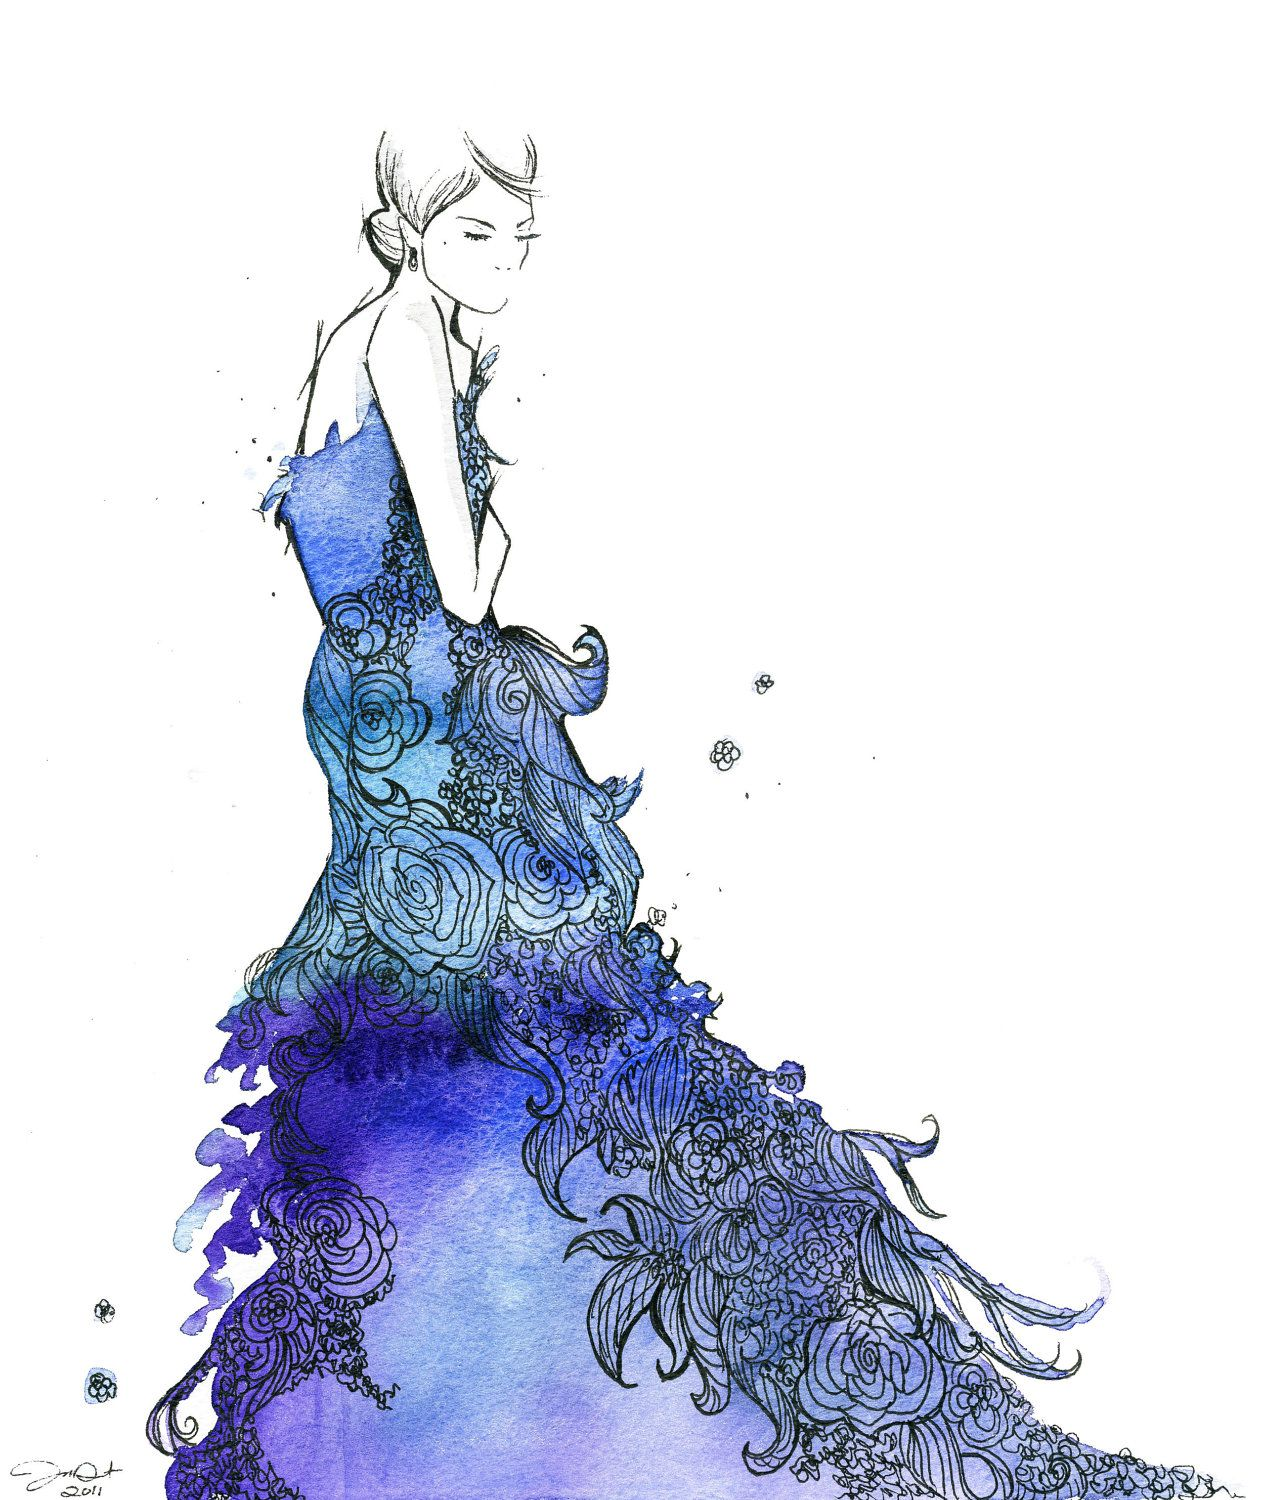 Pen And Ink Illustrations With Watercolor